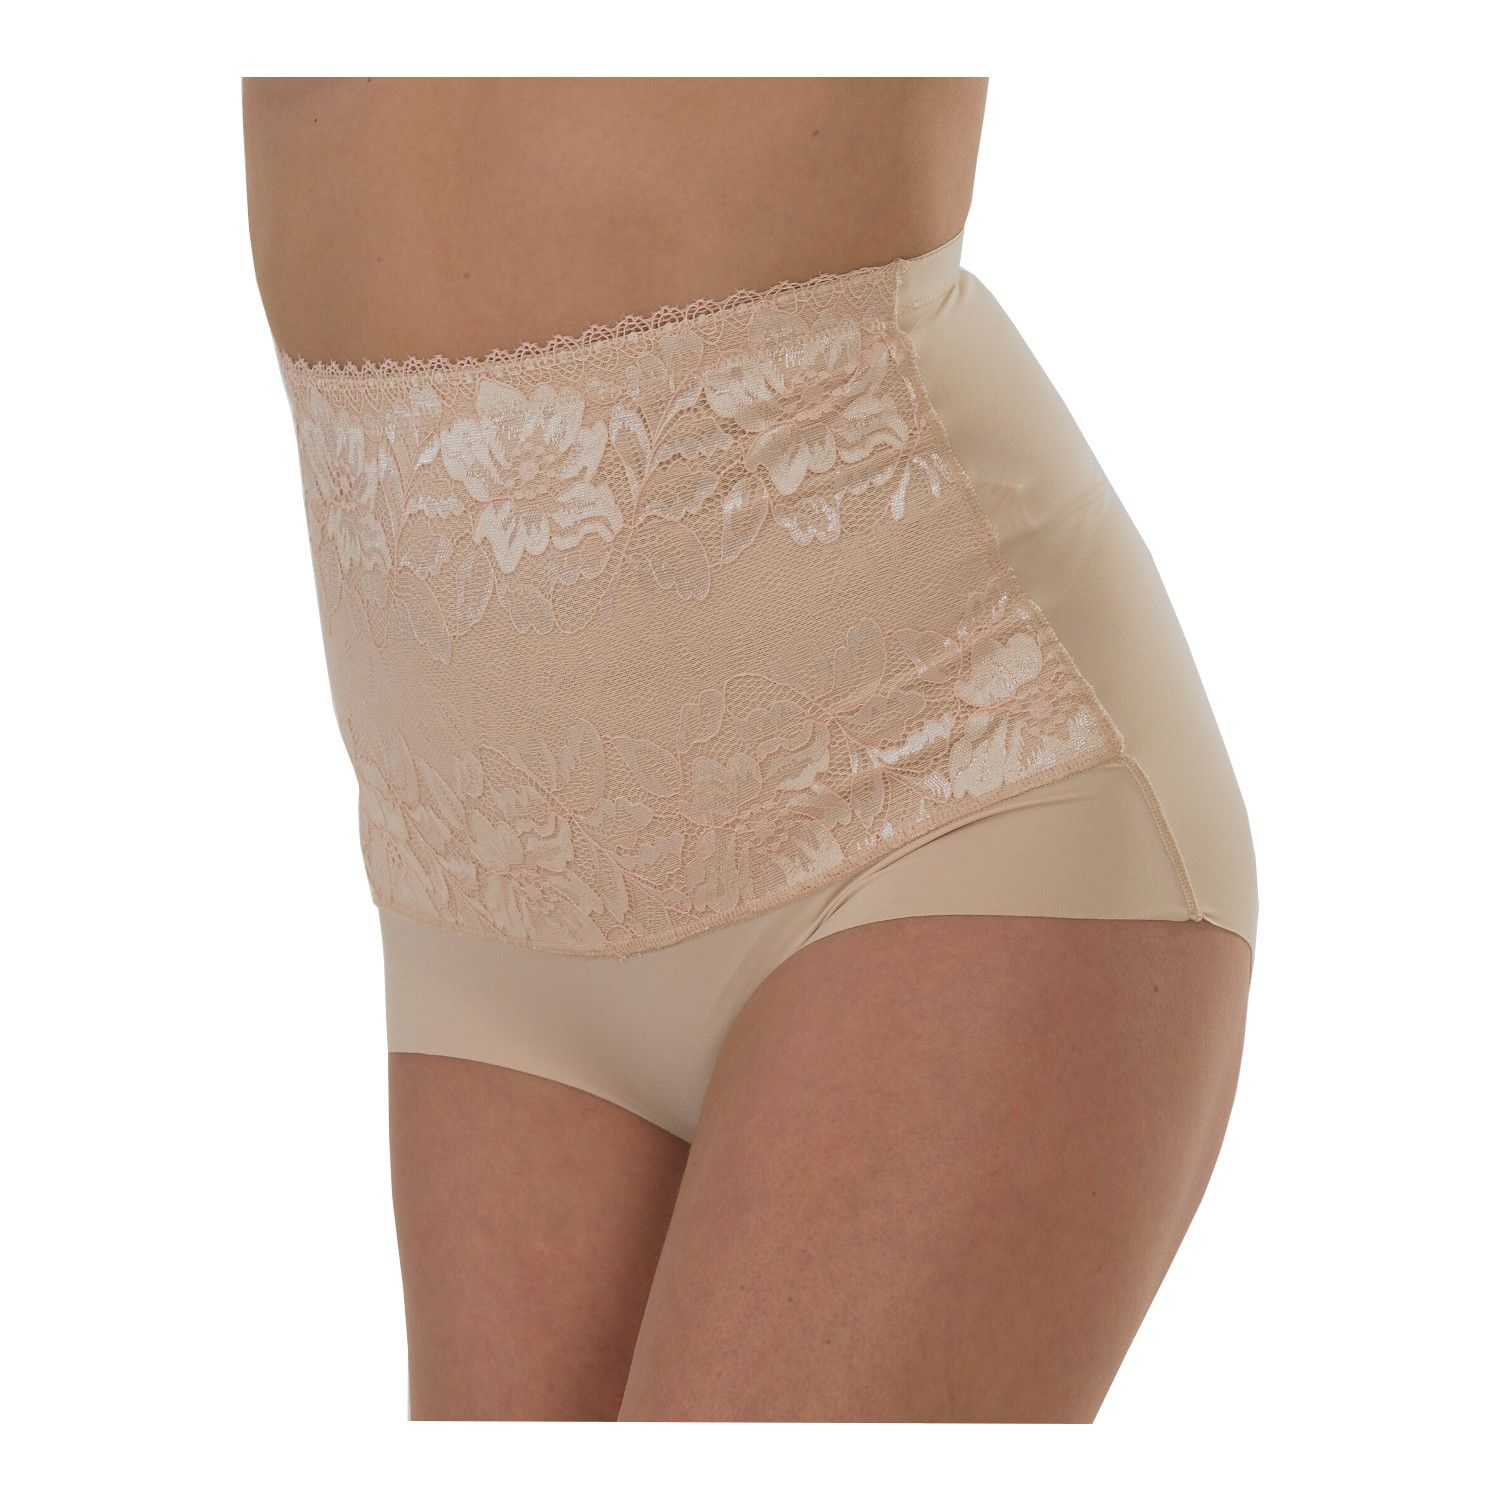 cccffcb8ada 2 Pairs Ladies Light Control Full Briefs with Lace Front Panel   No VPL